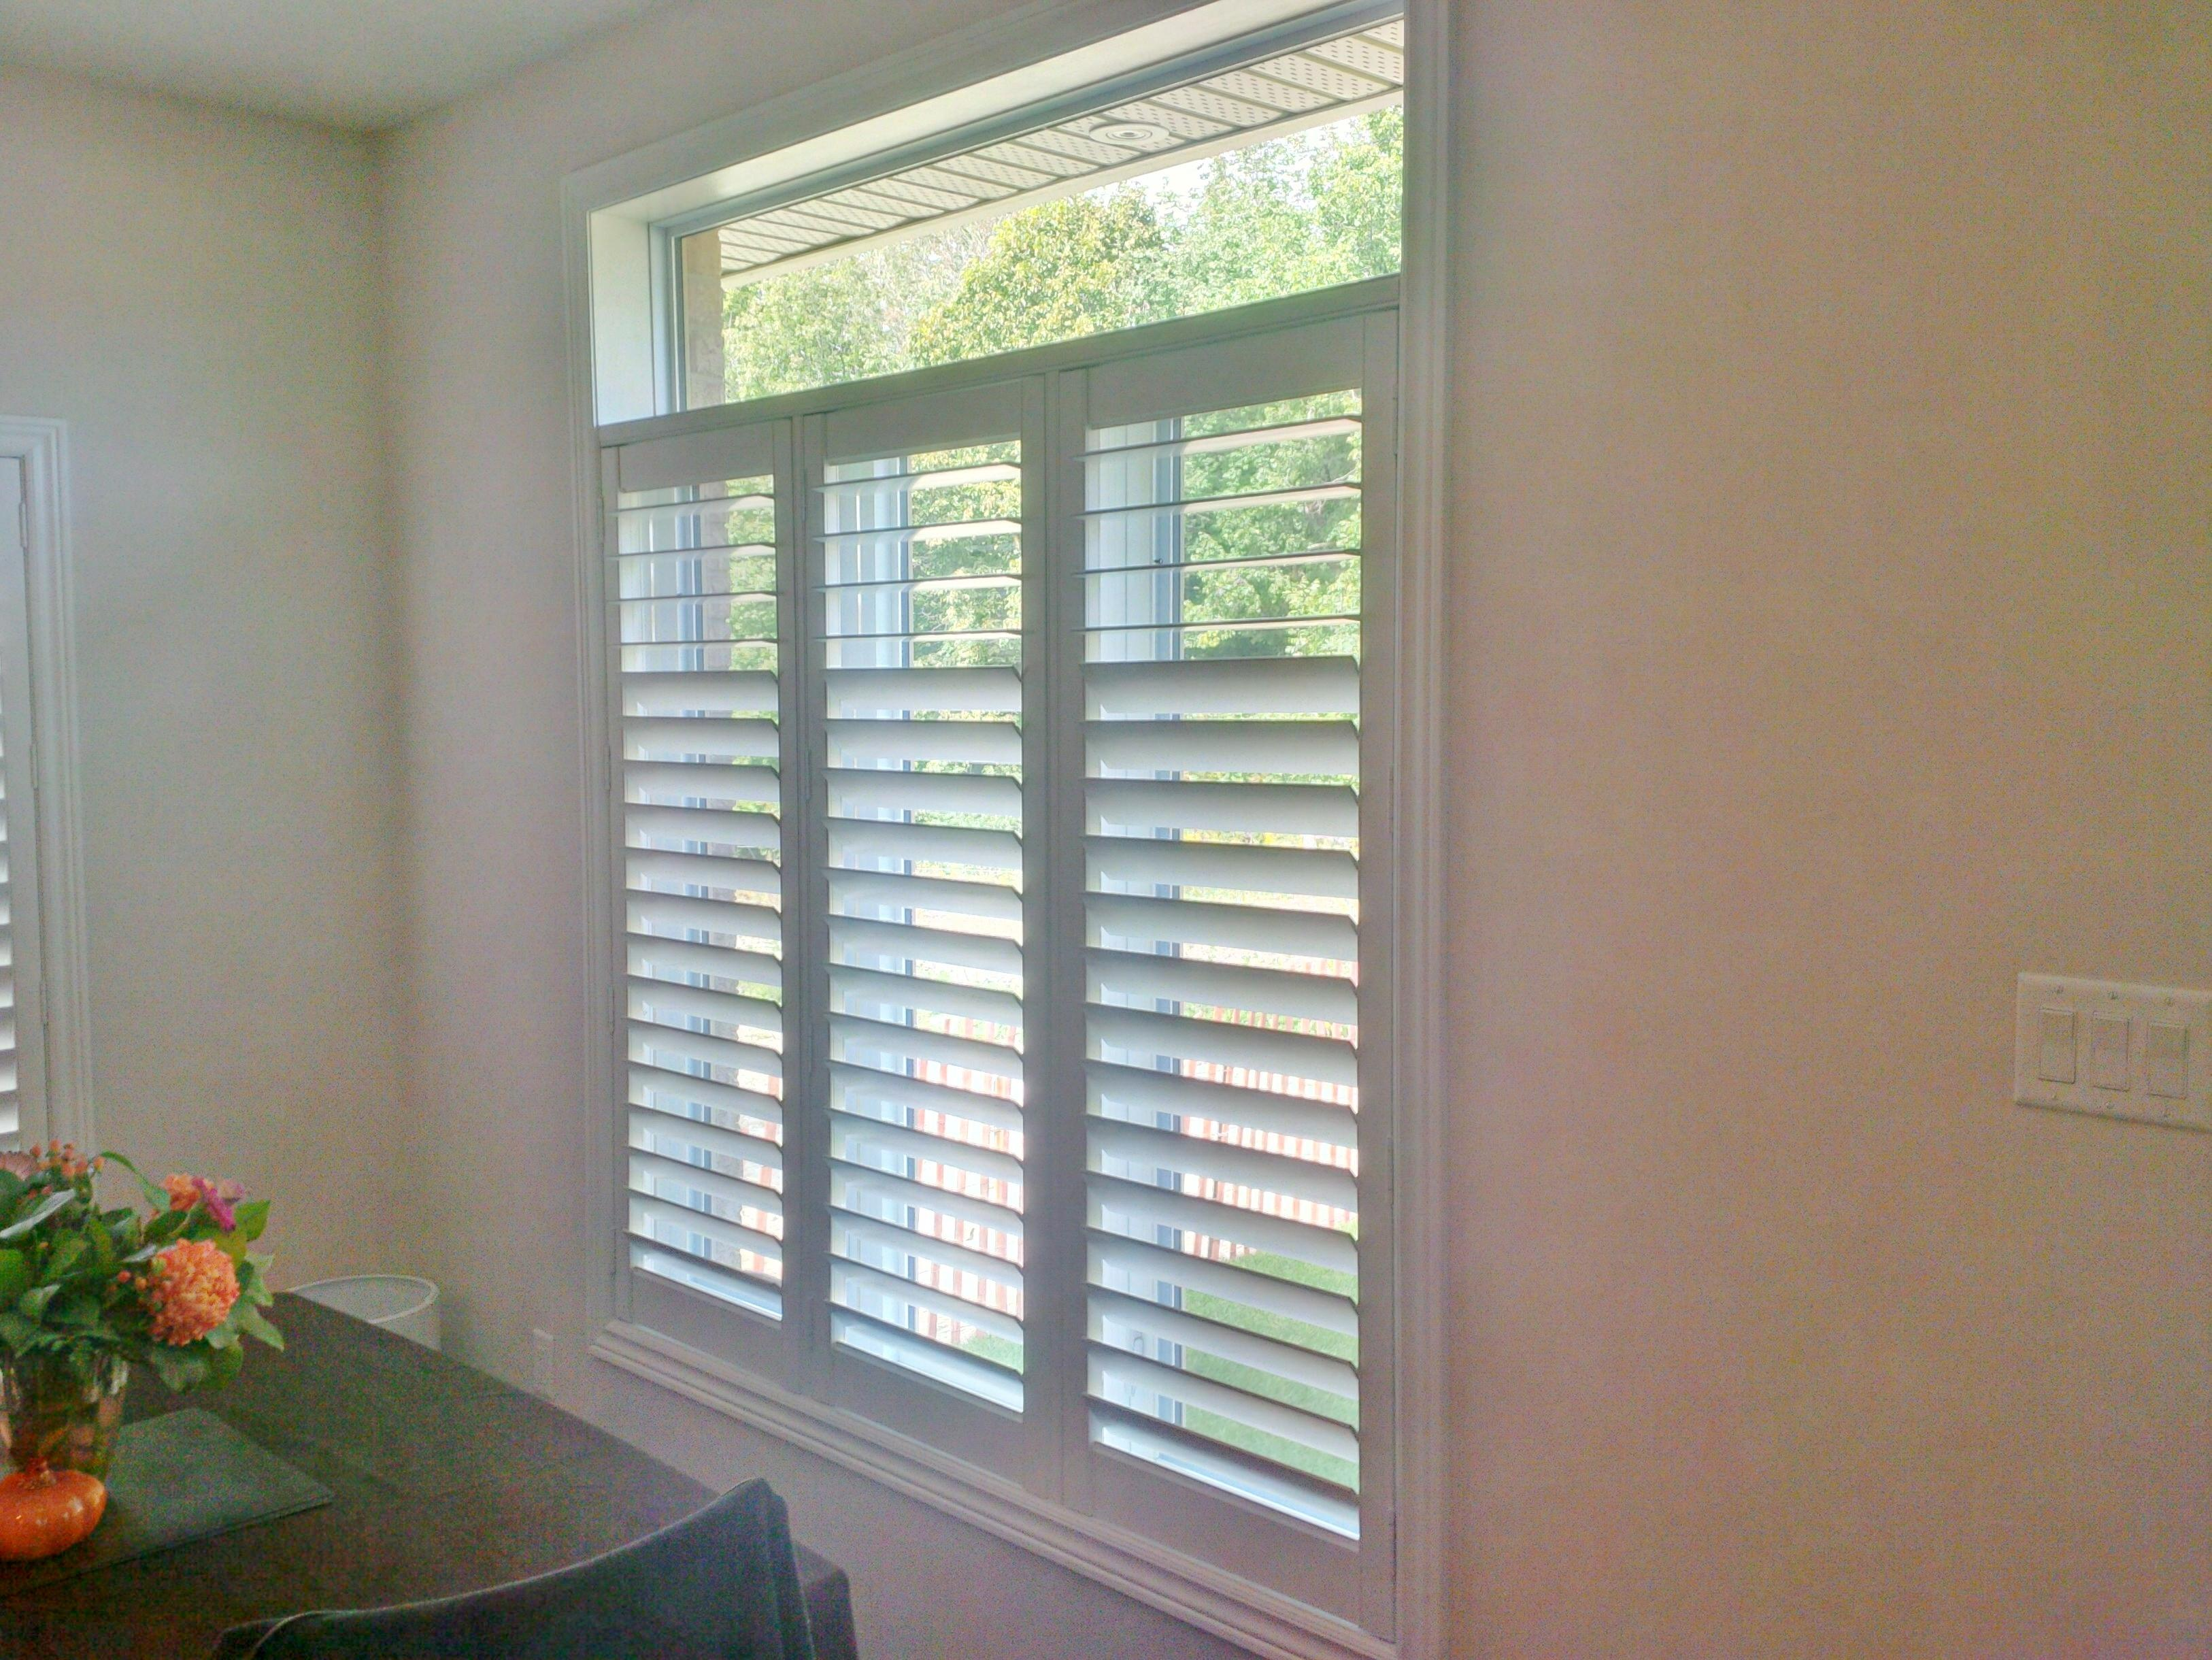 Budget Blinds à Waterloo: It is possible to install shutters with the transom left completely uncovered as we did for this Waterloo customer. They now have privacy and some light control provided by the shutter in the lower portion of the window. This is complemented by always have some natural, unfiltered light entering the room through the upper transom.